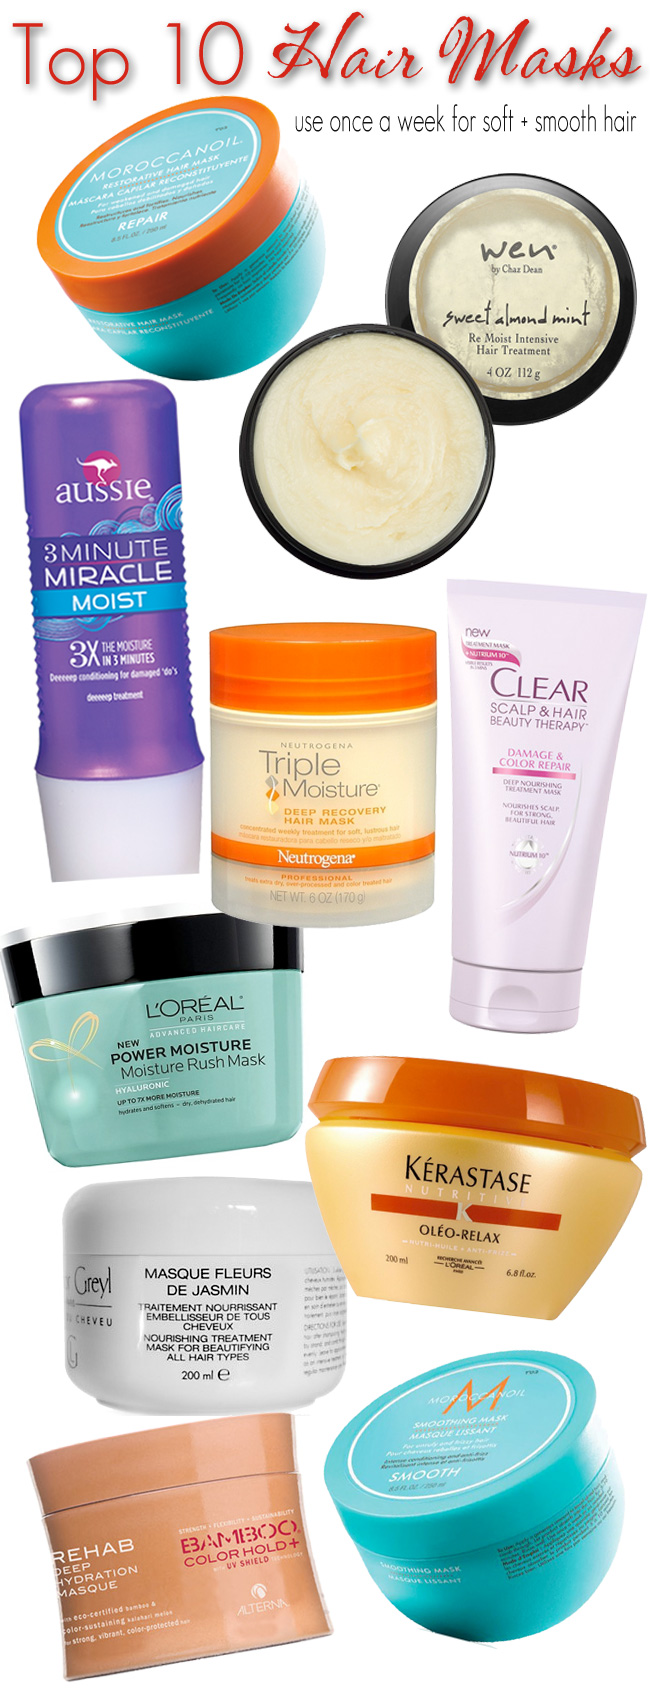 Top 10 Hair Masks Beautiful Makeup Search